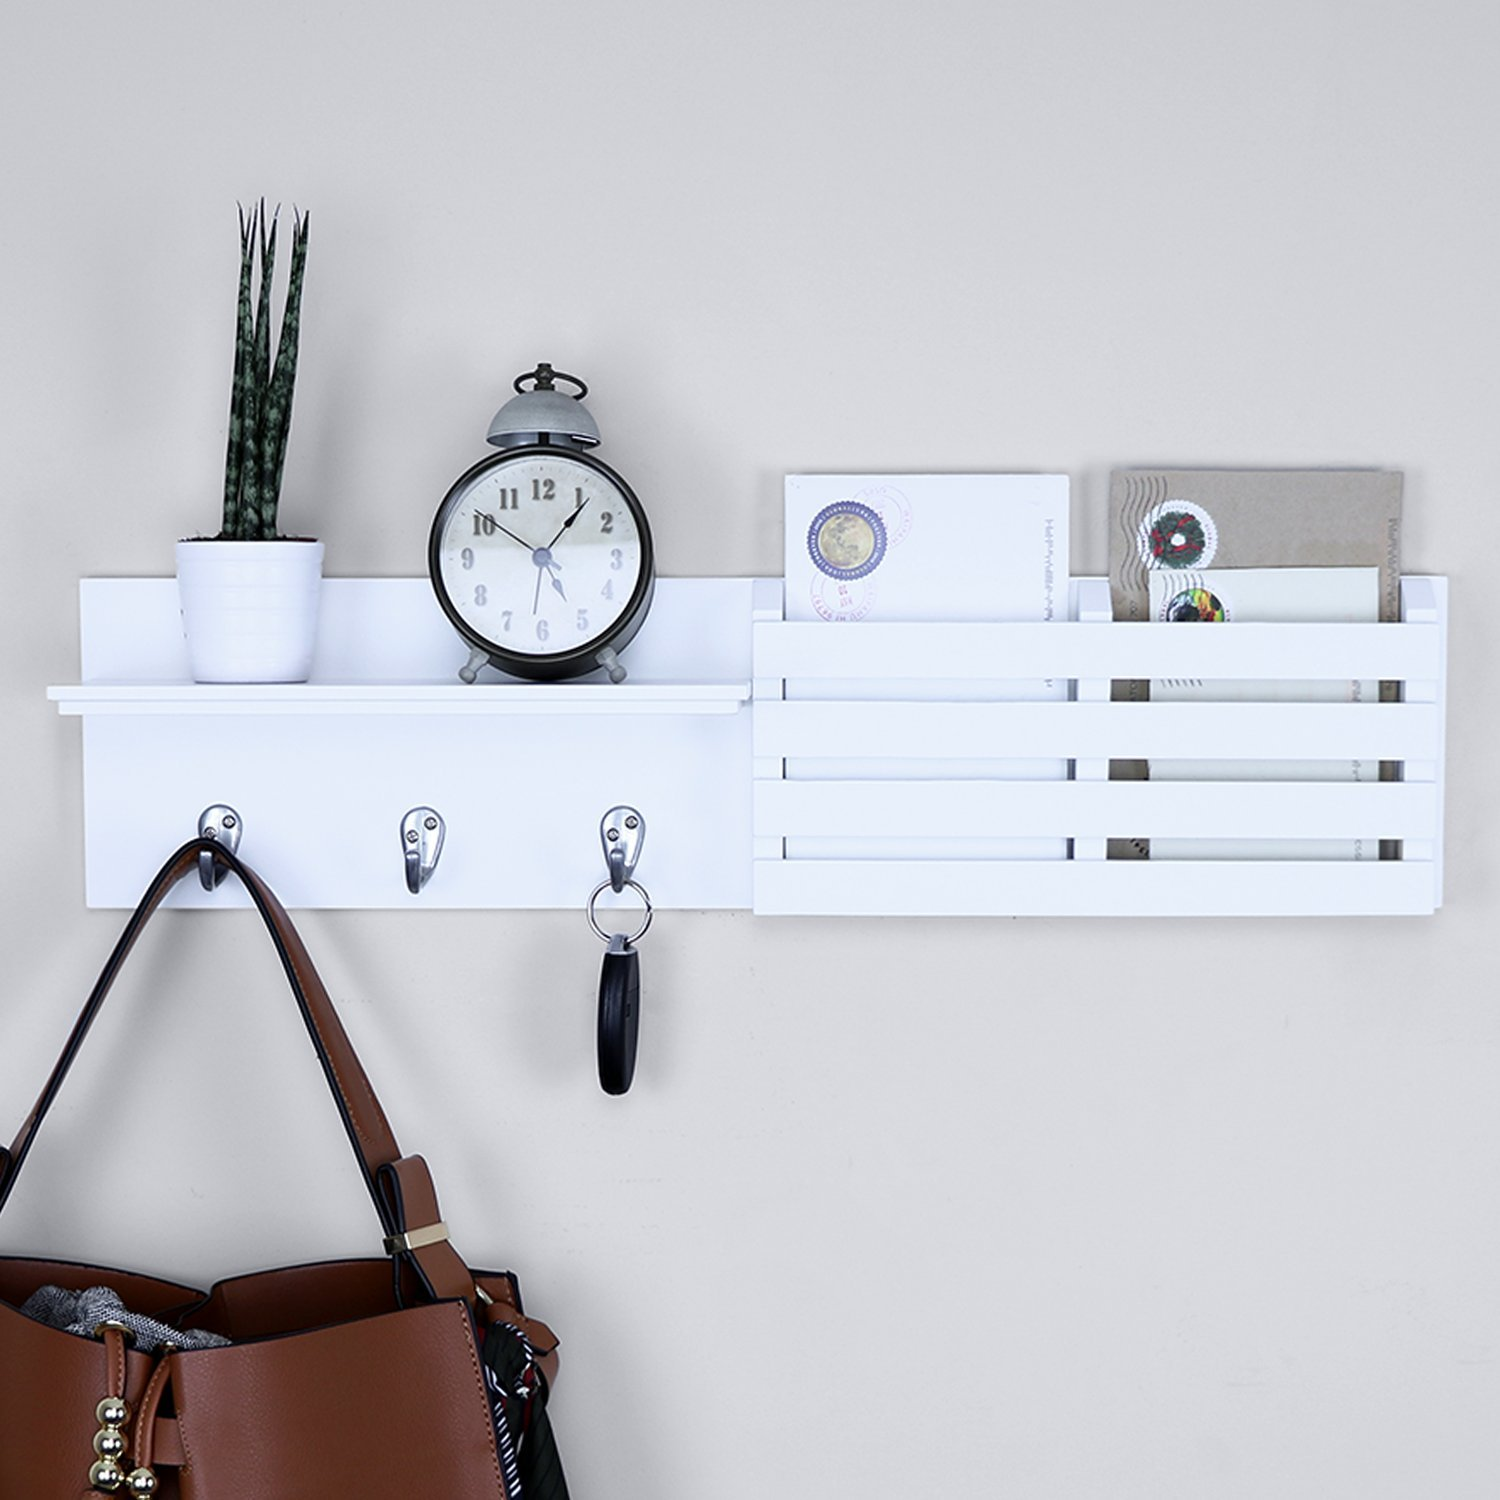 Ballucci Mail Holder and Coat Key Rack Wall Shelf